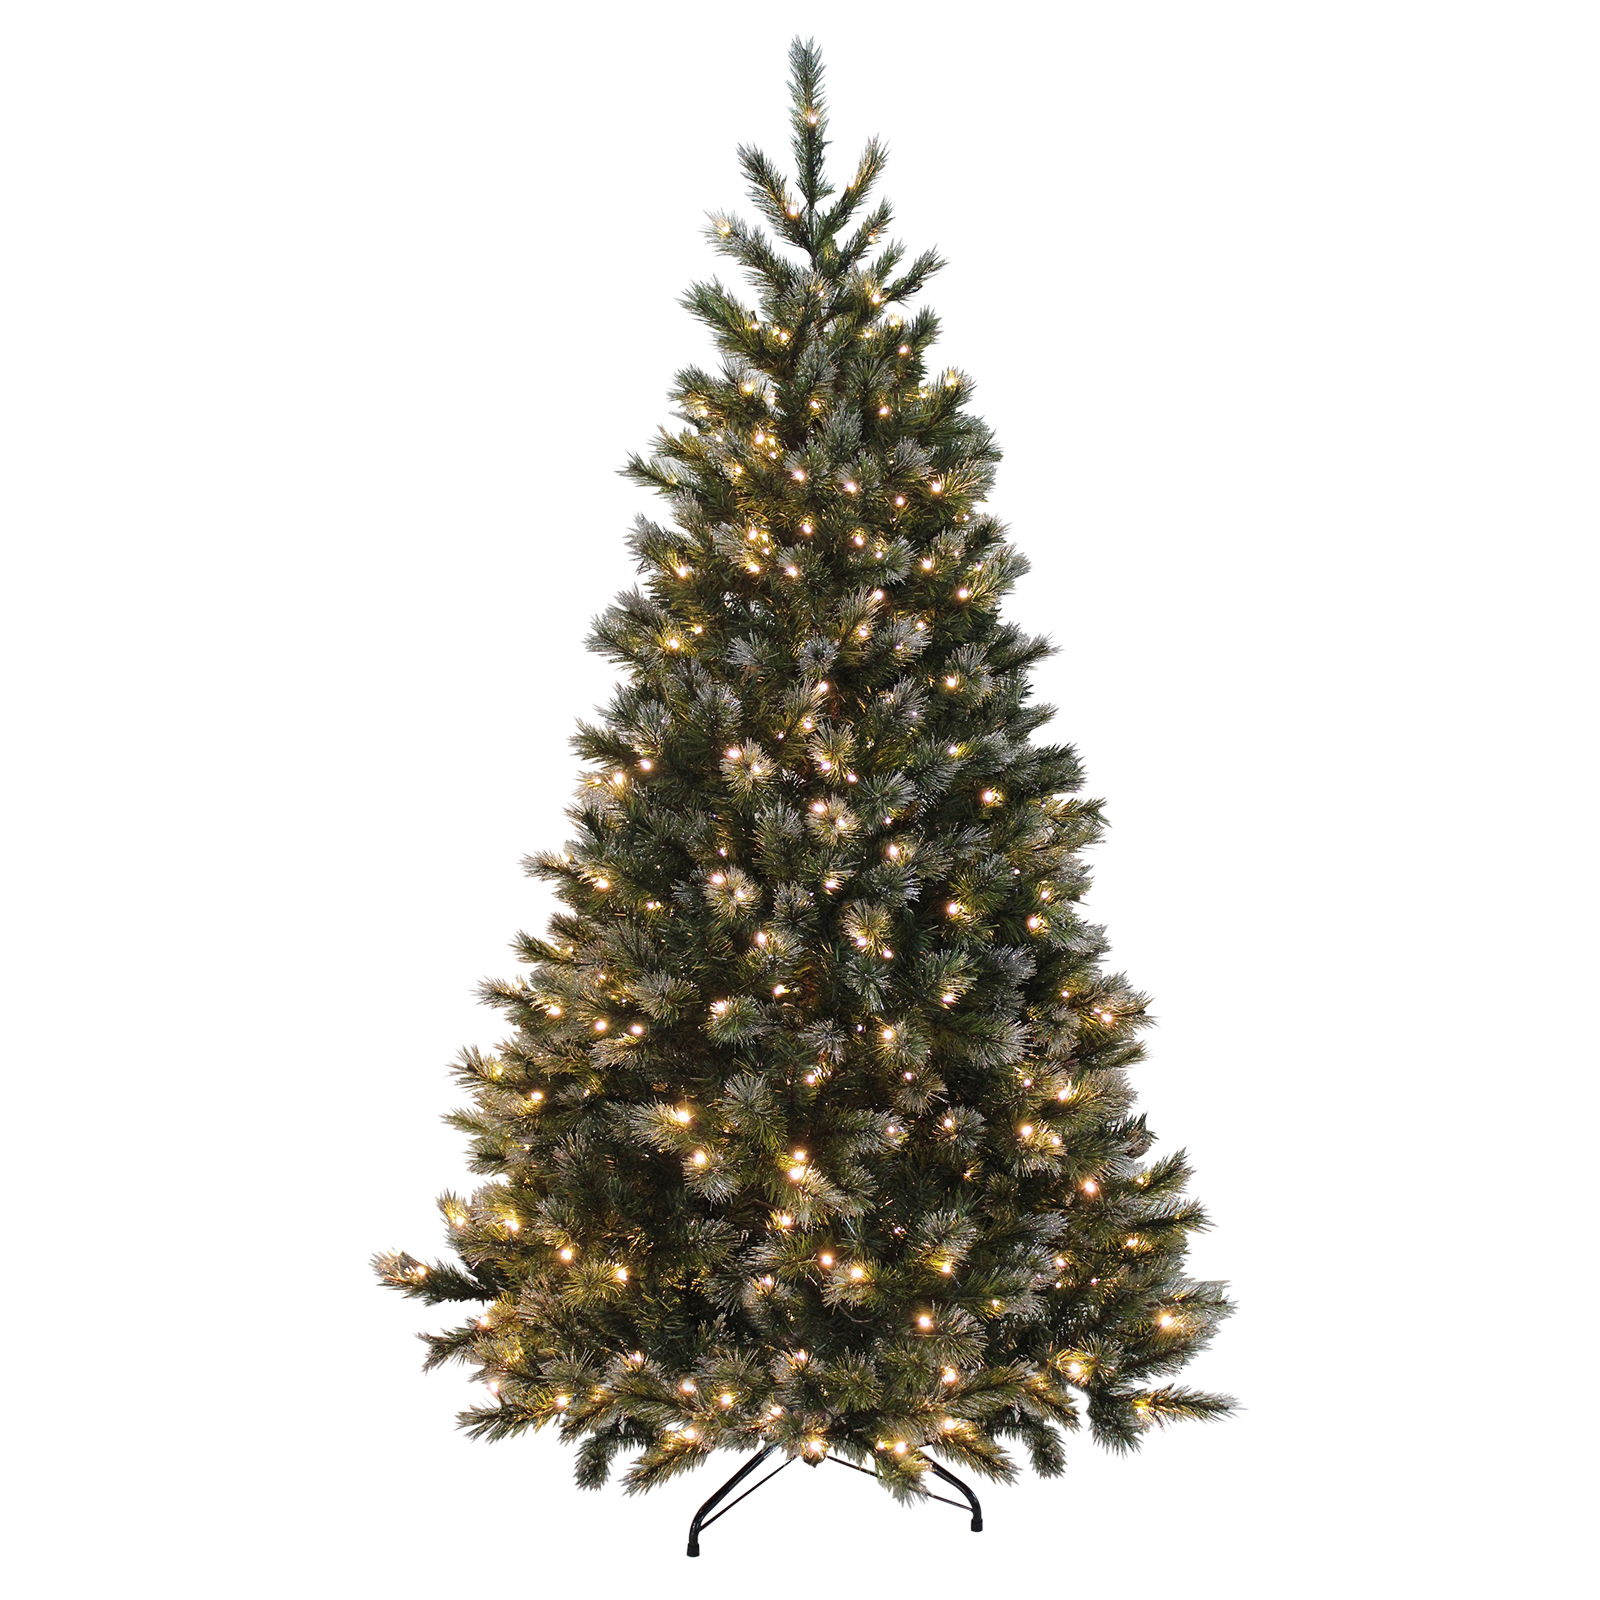 Green Artificial Xmas Christmas Tree With Glitter Tips & Warm ...